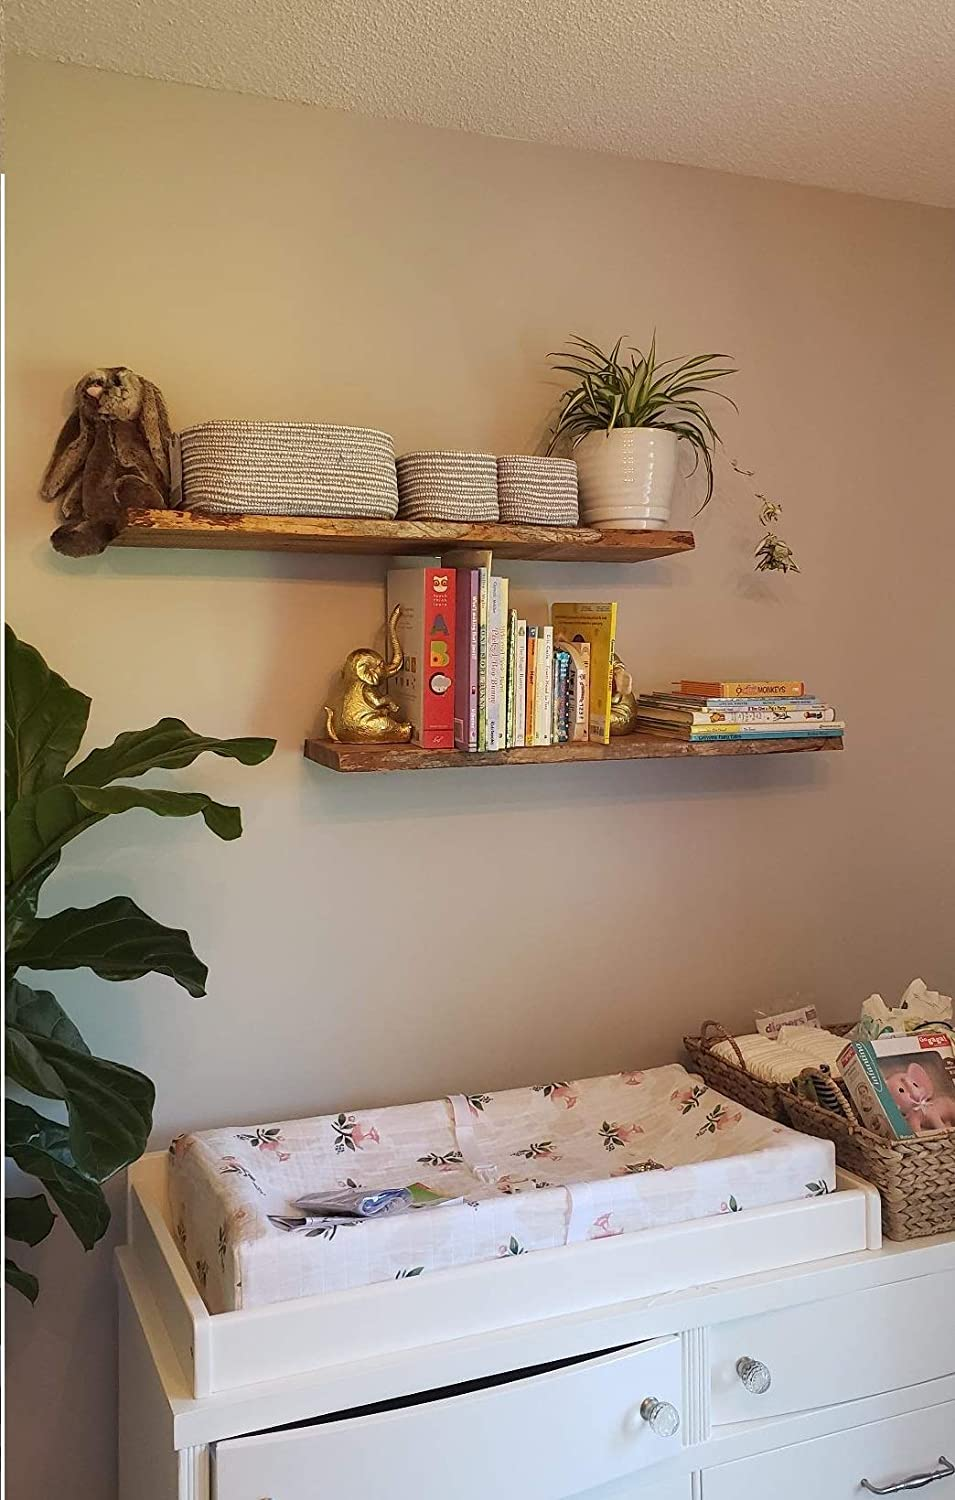 Blind Shelf Supports,Hidden Brackets Concealed Supports for DIY or Custom Wall Shelving Invisible Support for Shelves-Set of 2 6 Rod with 1//2 Diameter Floating Shelf Brackets for Floating shelve